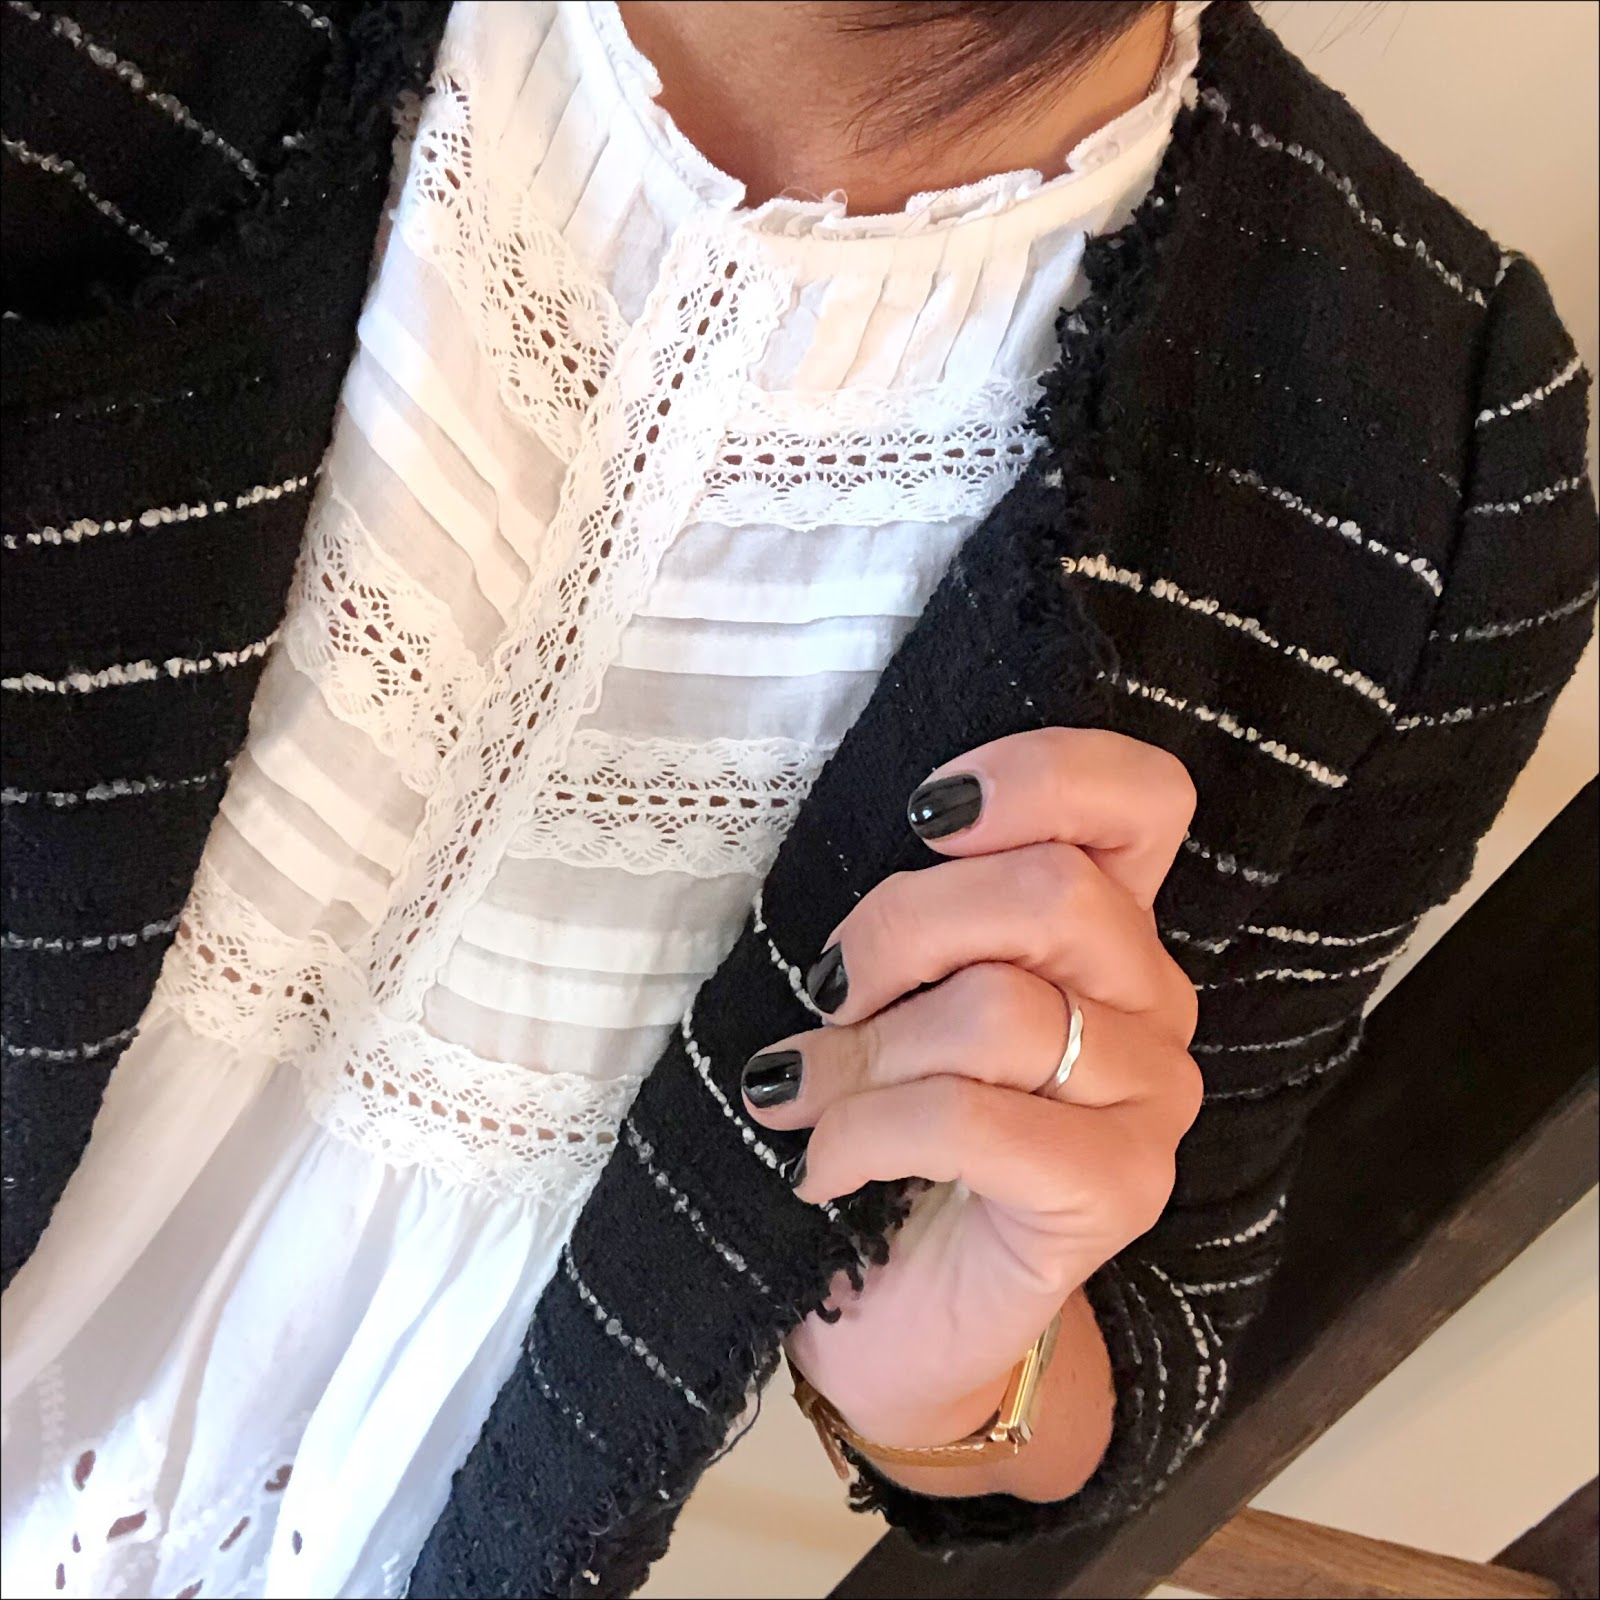 my midlife fashion, isabel marant etoile boucle jacket, zara embroidered blouse with frills, uterque mock croc crossbody bag, j crew suede tassel pointed flats, j crew 8 toothpick skinny jeans in true black